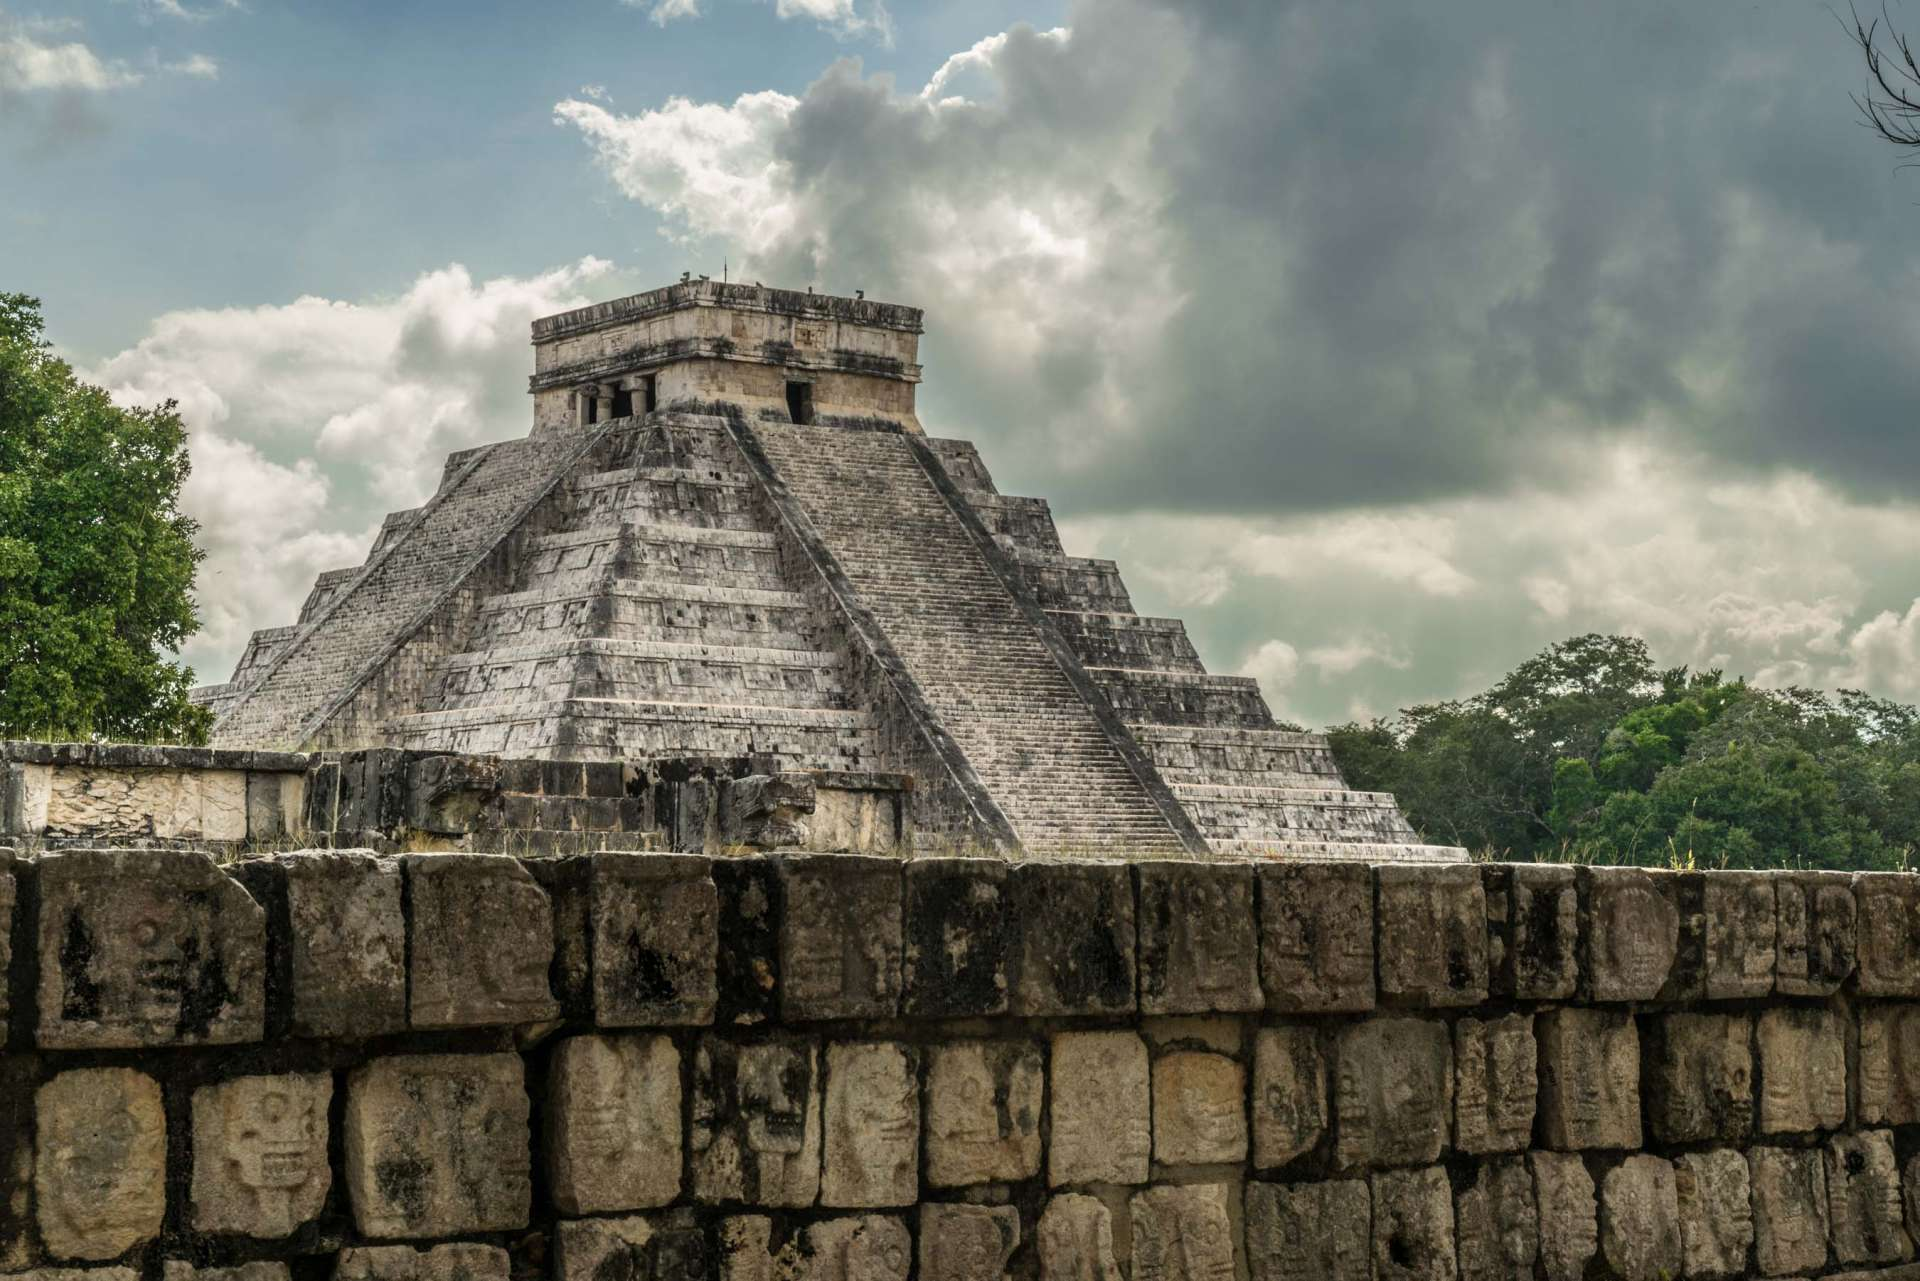 El Castillo Temple of Kukulcan Chichen Itza Yucatan Mexico 3